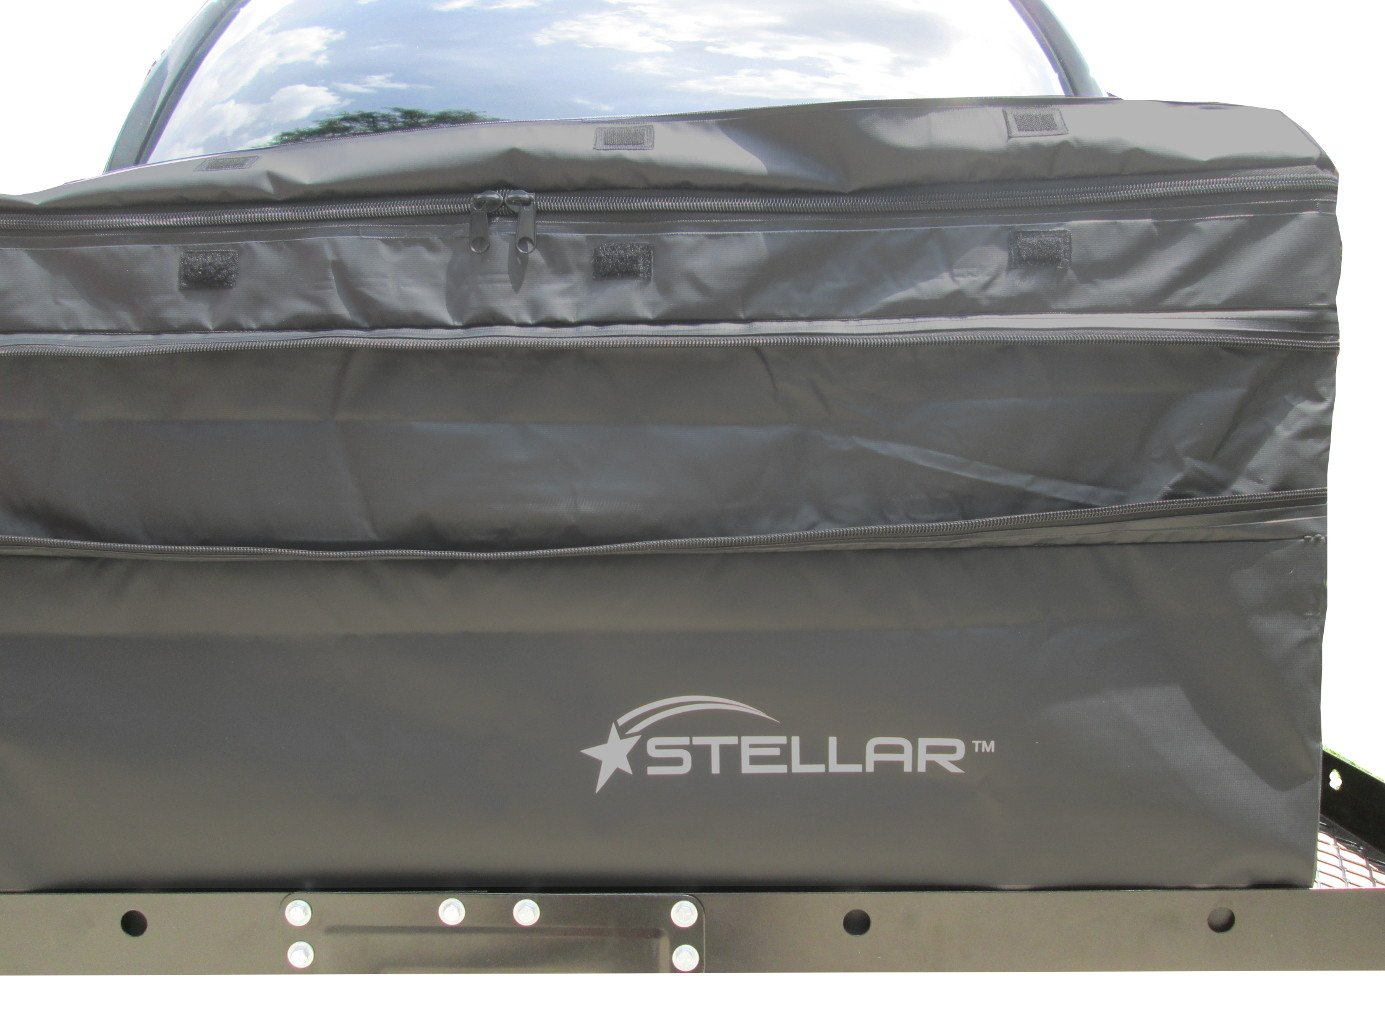 Stellar 10102 Expandable Waterproof Cargo Bag for Hitch Baskets by Stellar (Image #5)